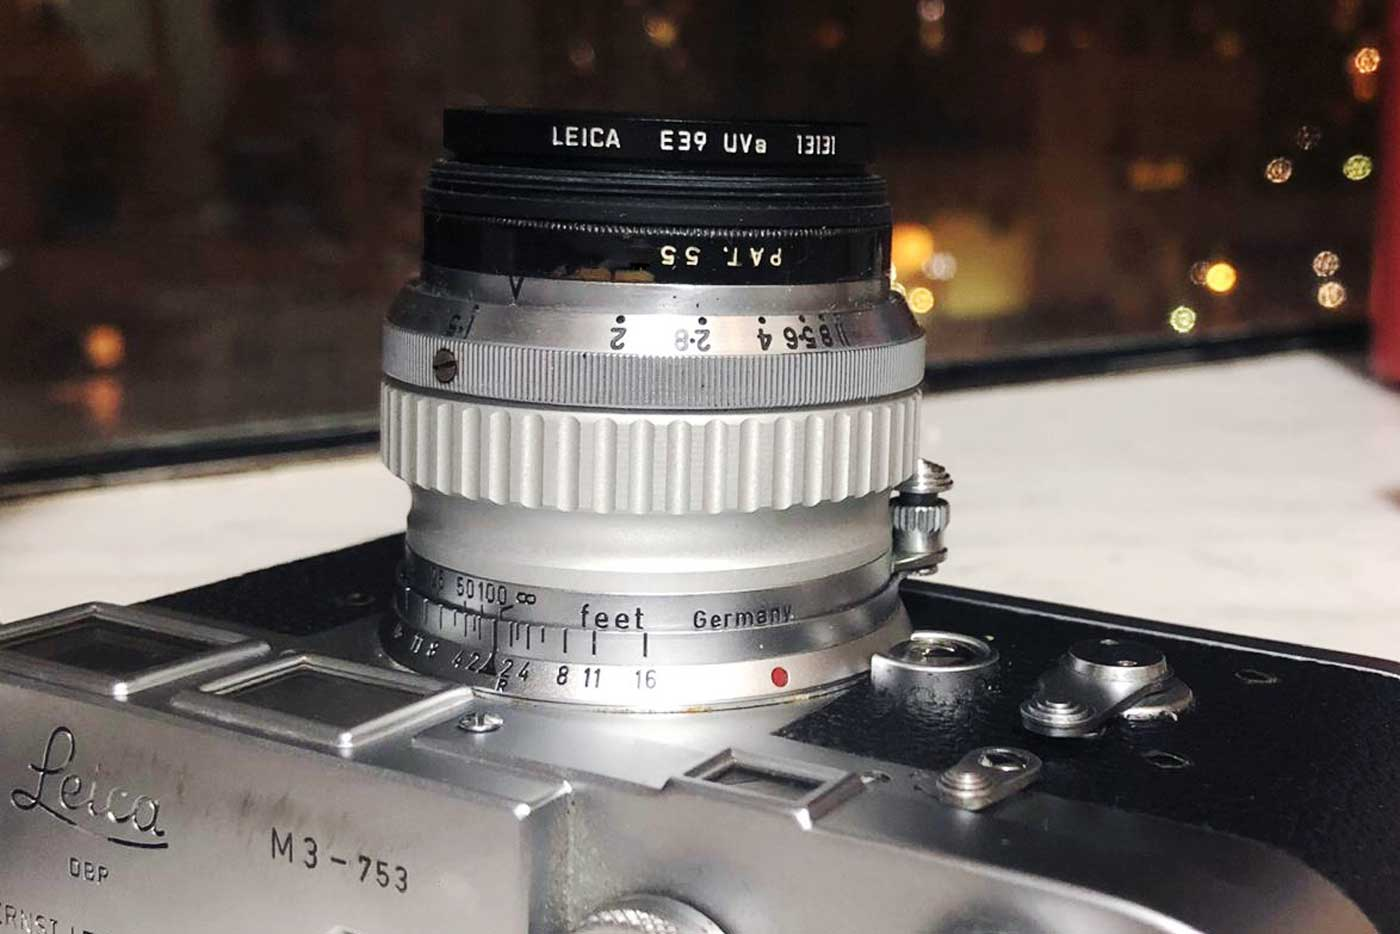 dallmeyer-septac-50mm-f1.5-1.5-50-cine-movie-cinelens-rare-super-six-legendary-vintage-modified-leica-m-mount-black-paint-test-review-film-photography-m3-side